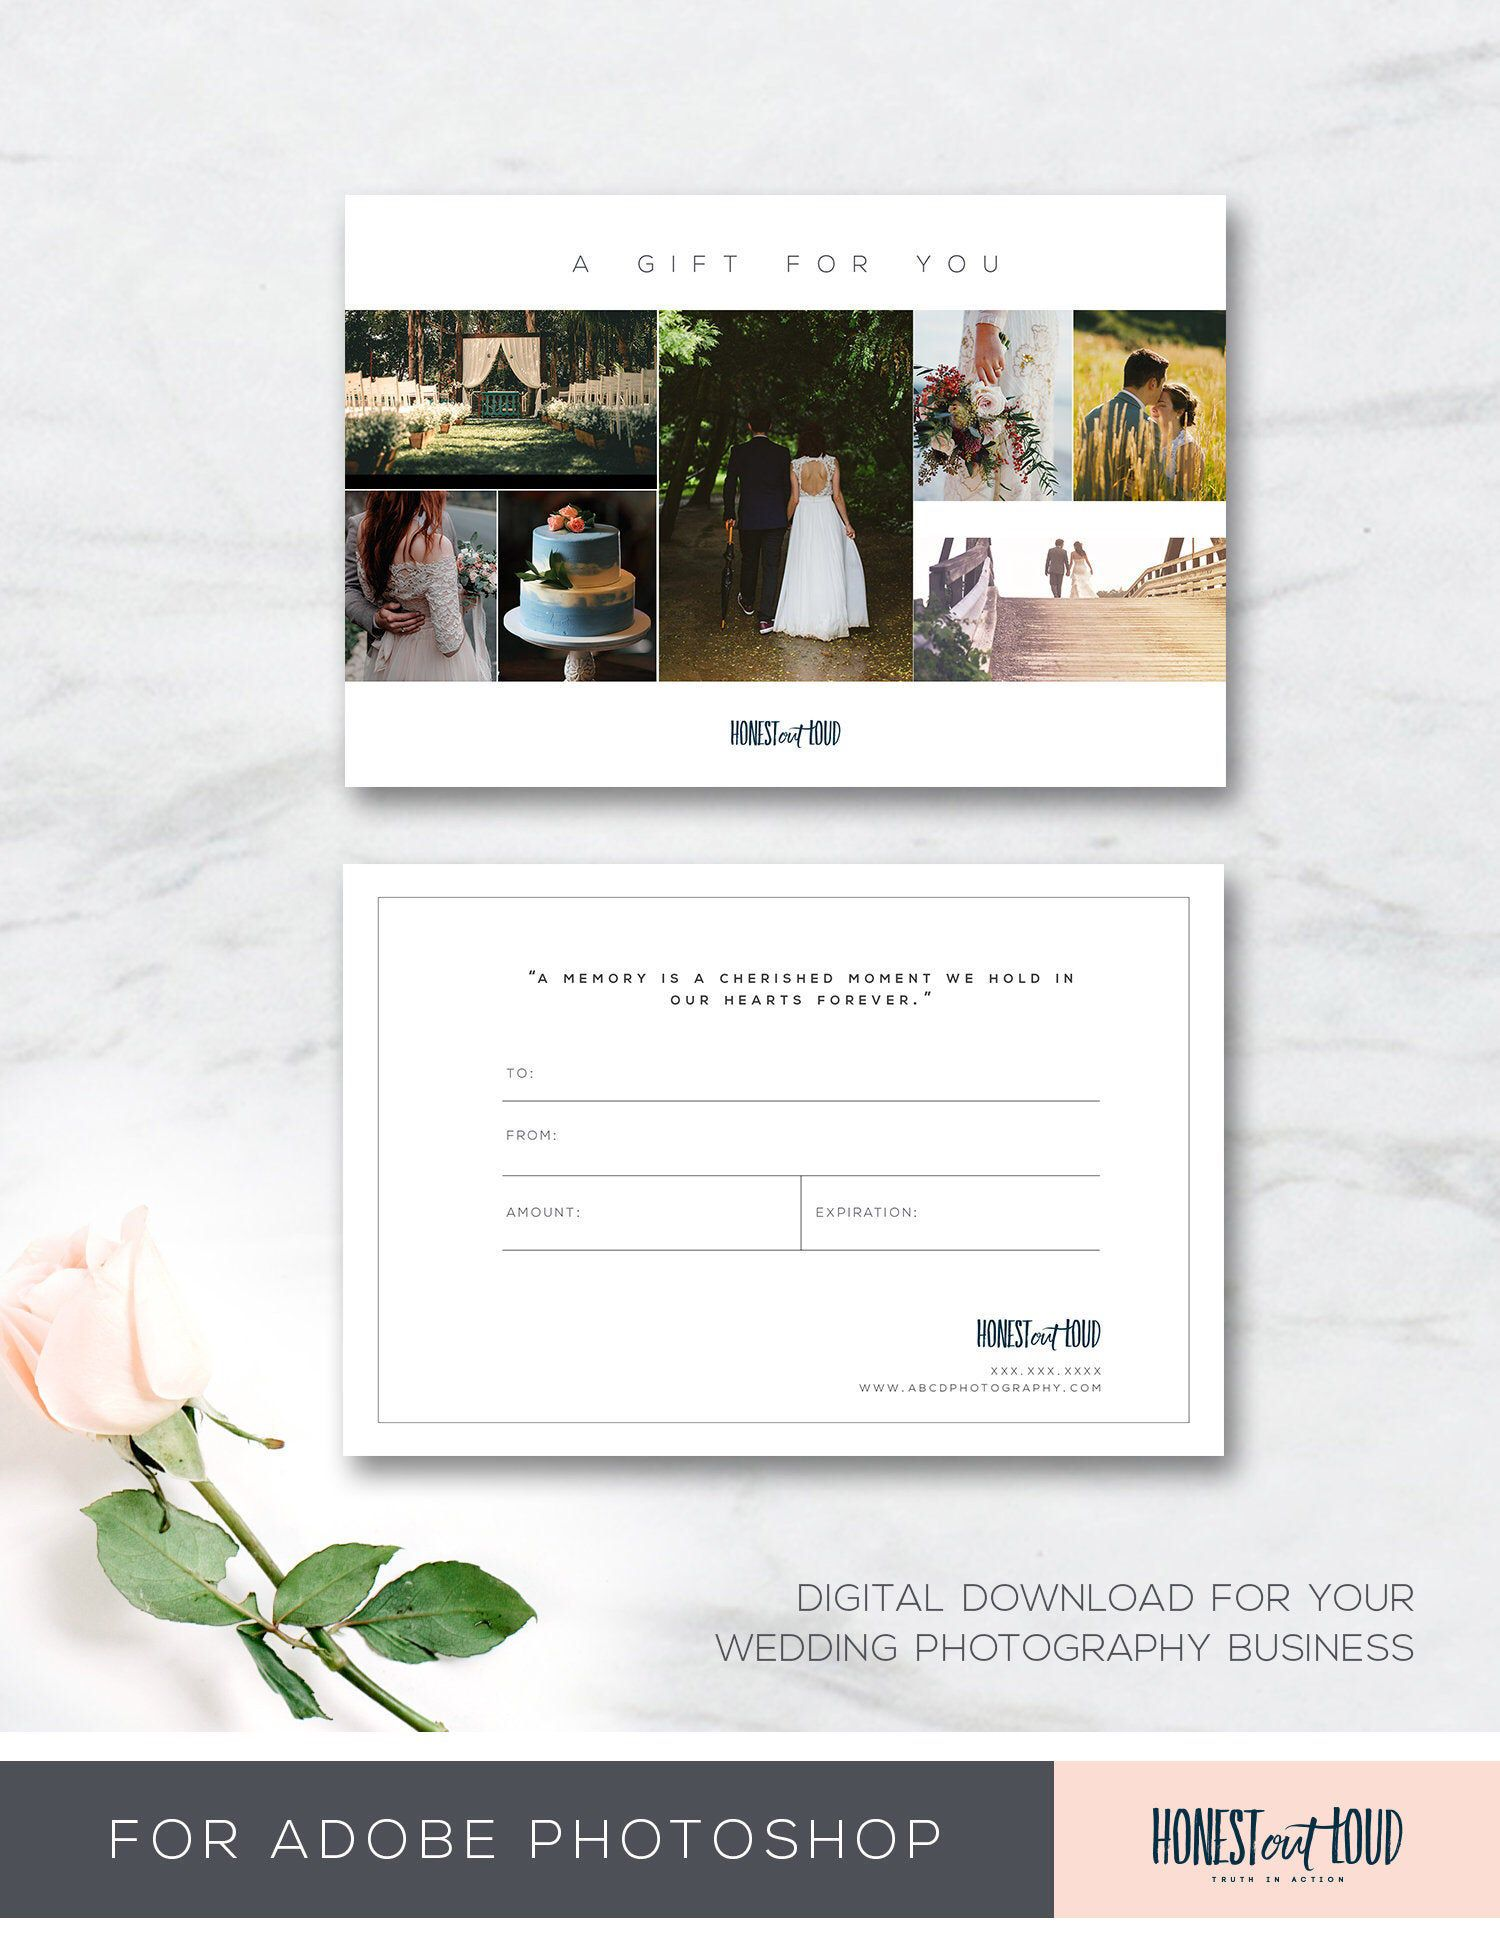 Gift Card Template Wedding Photography 4x6 Photoshop Instant Etsy Gift Card Template Wedding Photography Gifts Photography Gifts